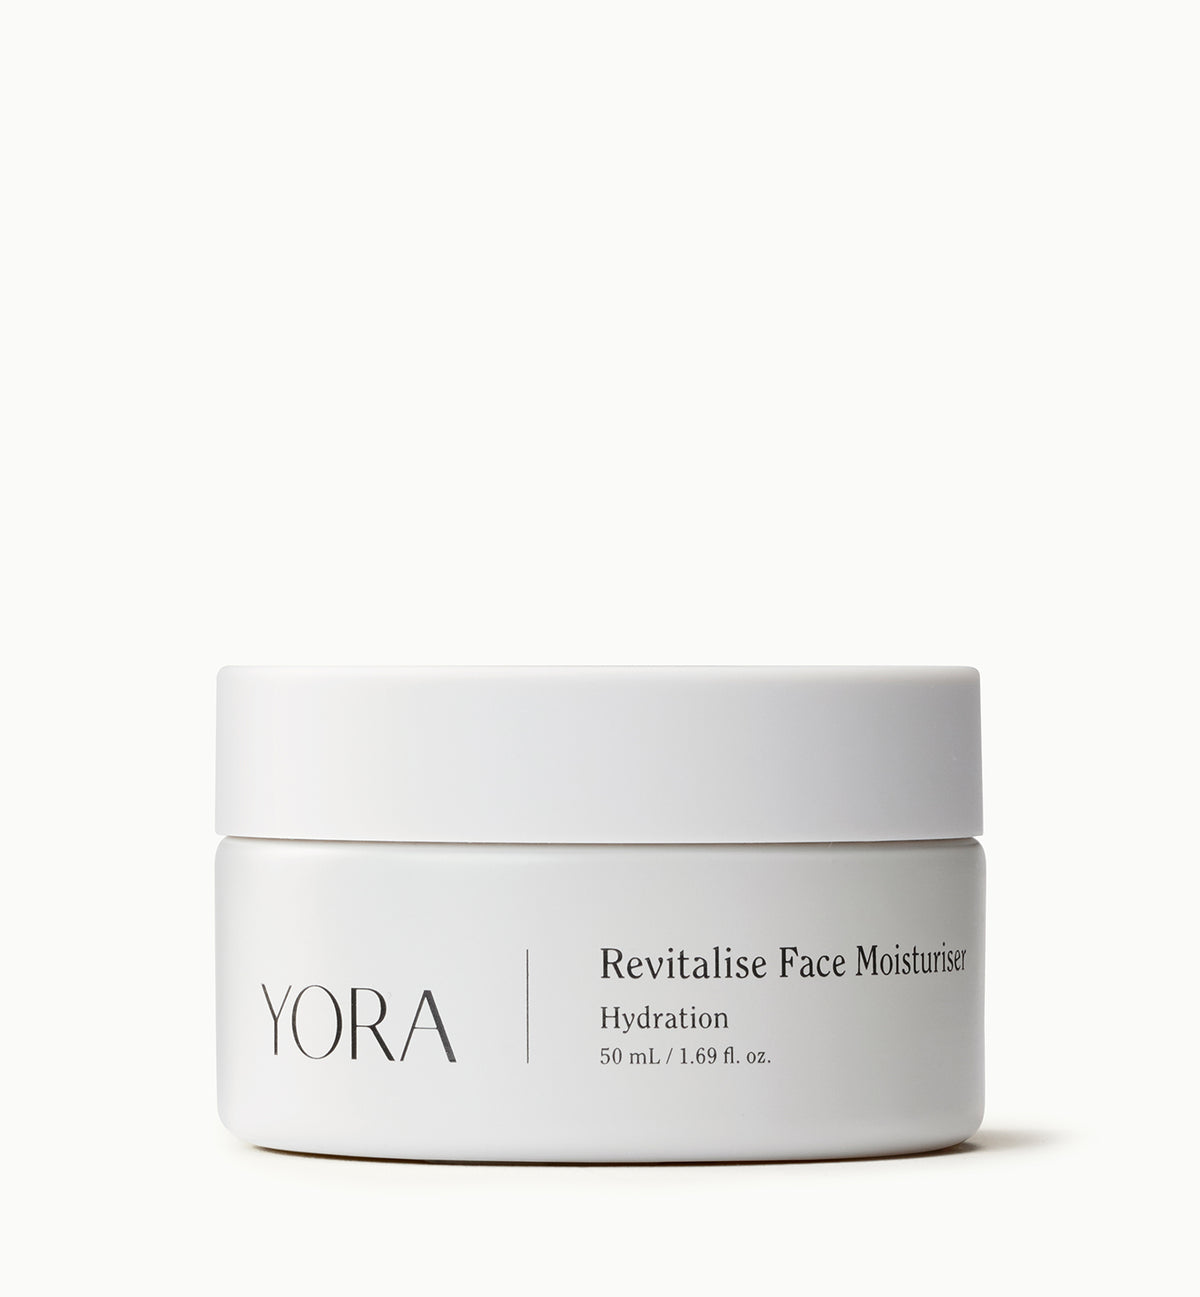 Revitalise Face Moisturiser